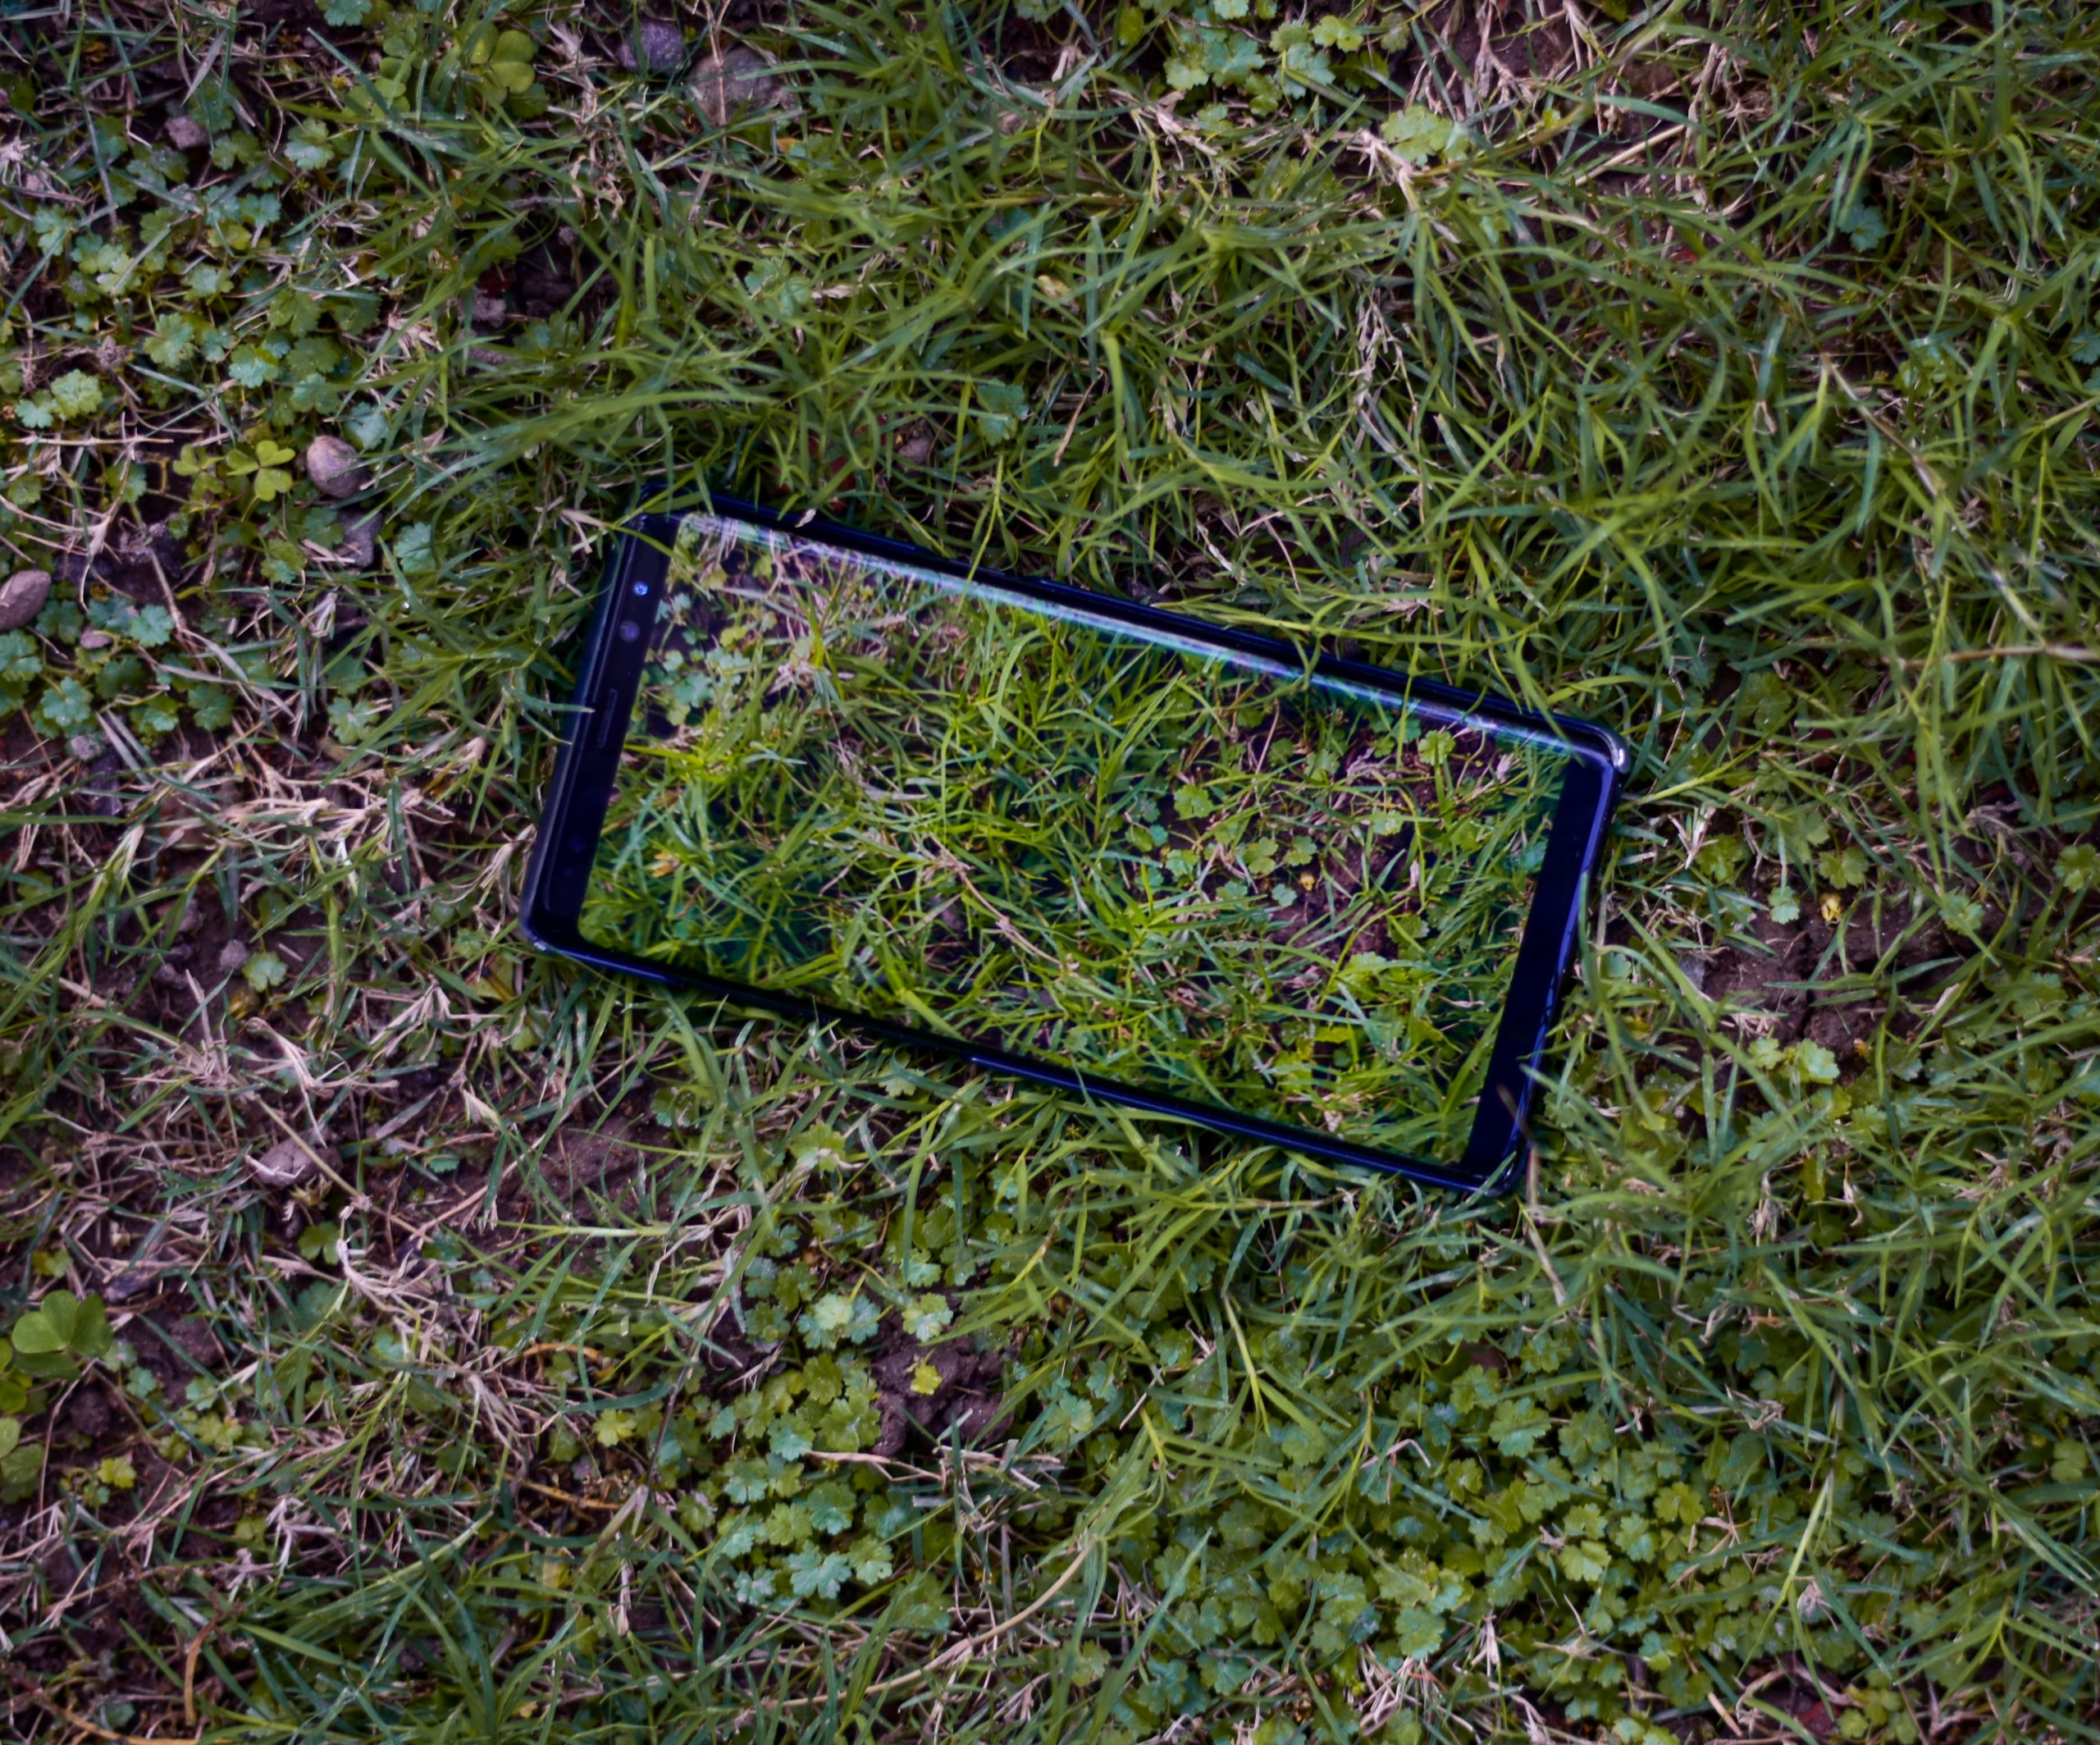 Mobile Phone Case on Grass